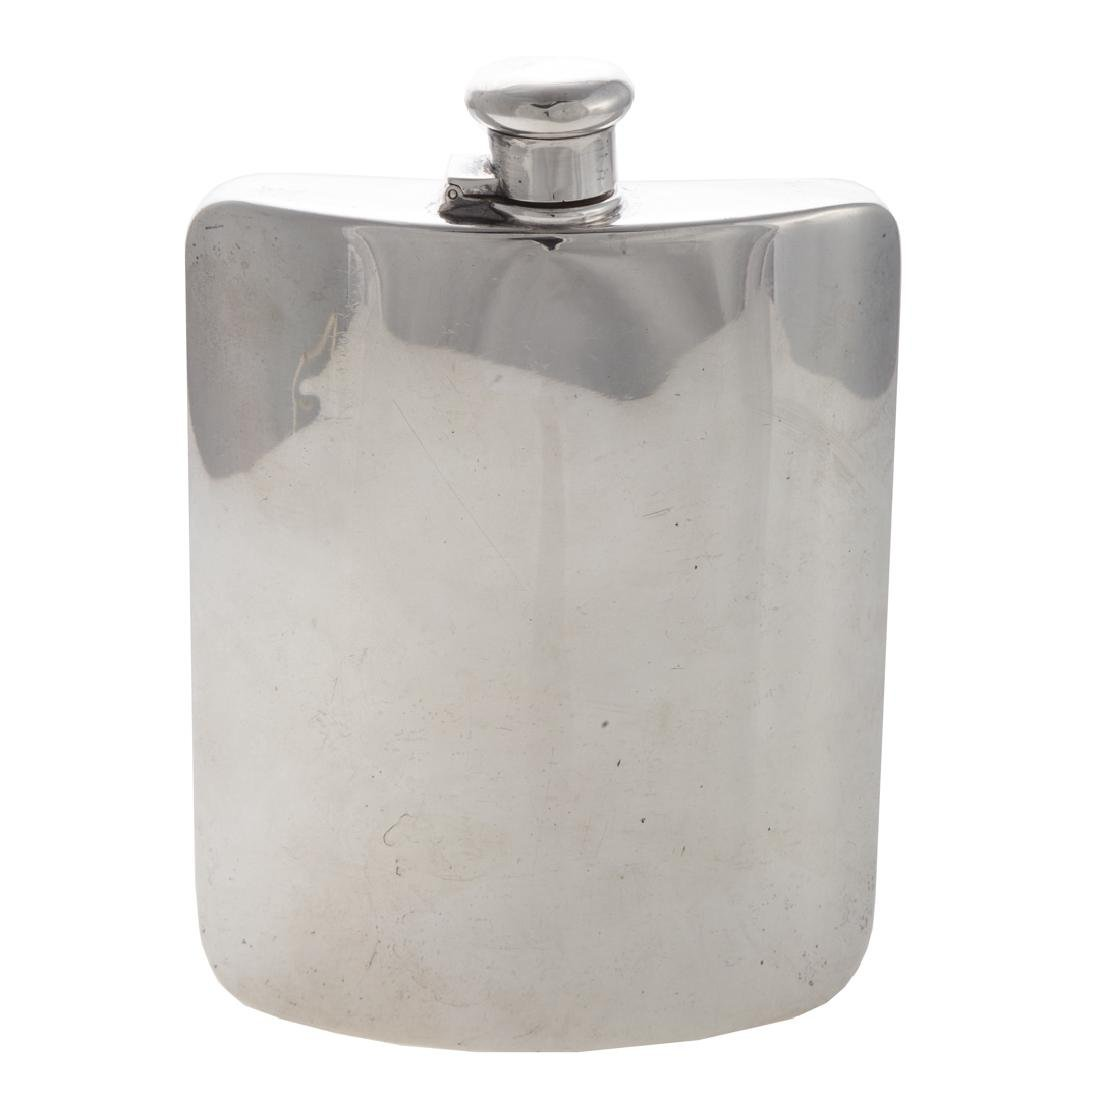 Tiffany & Co. sterling whiskey flask